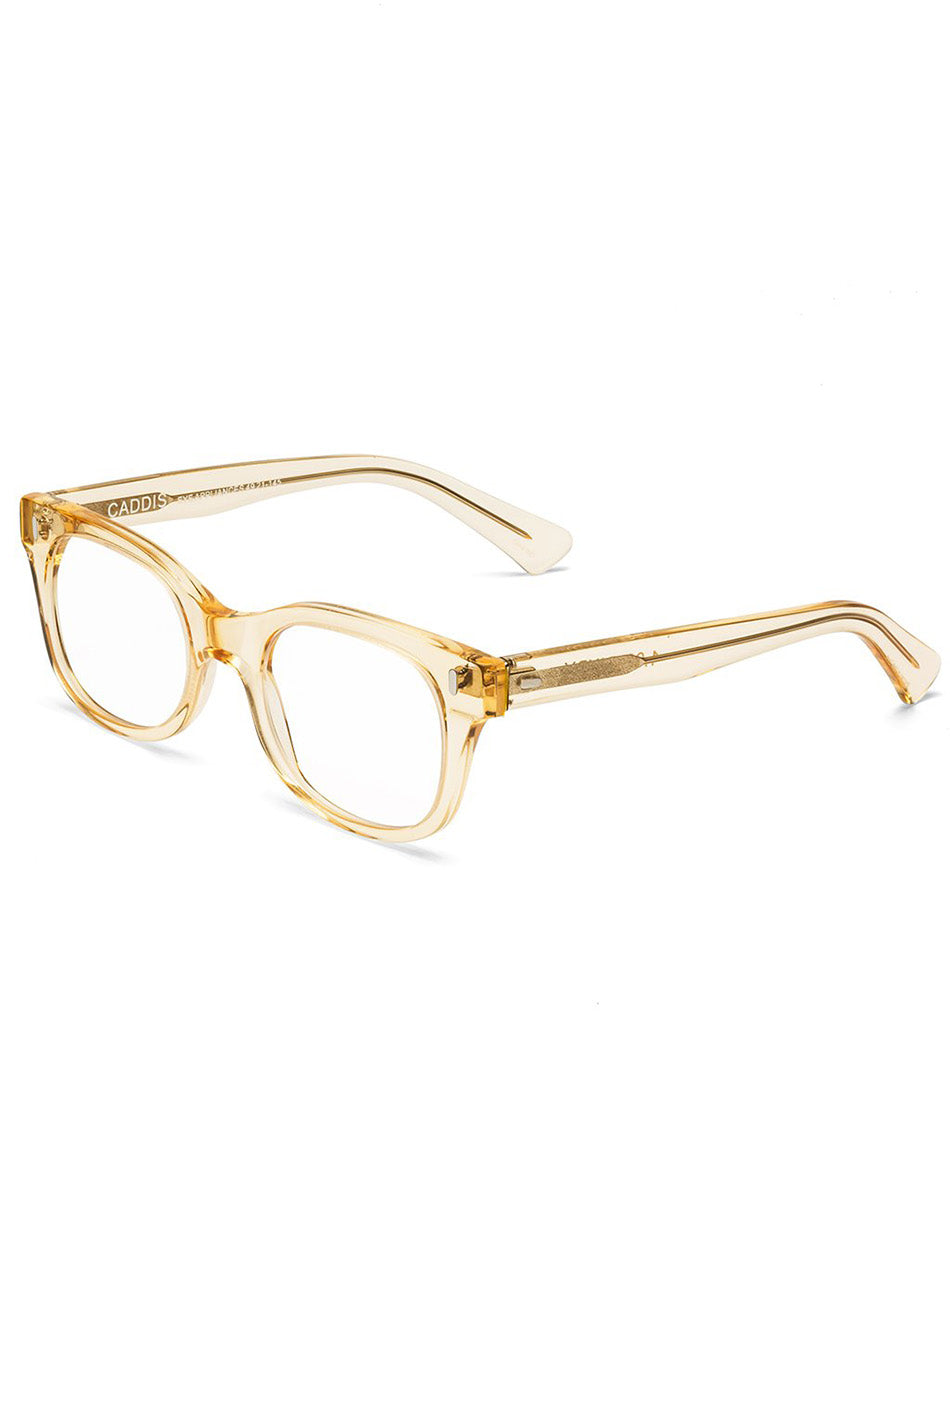 CADDIS - BIXBY reader glasses, Raw Honey